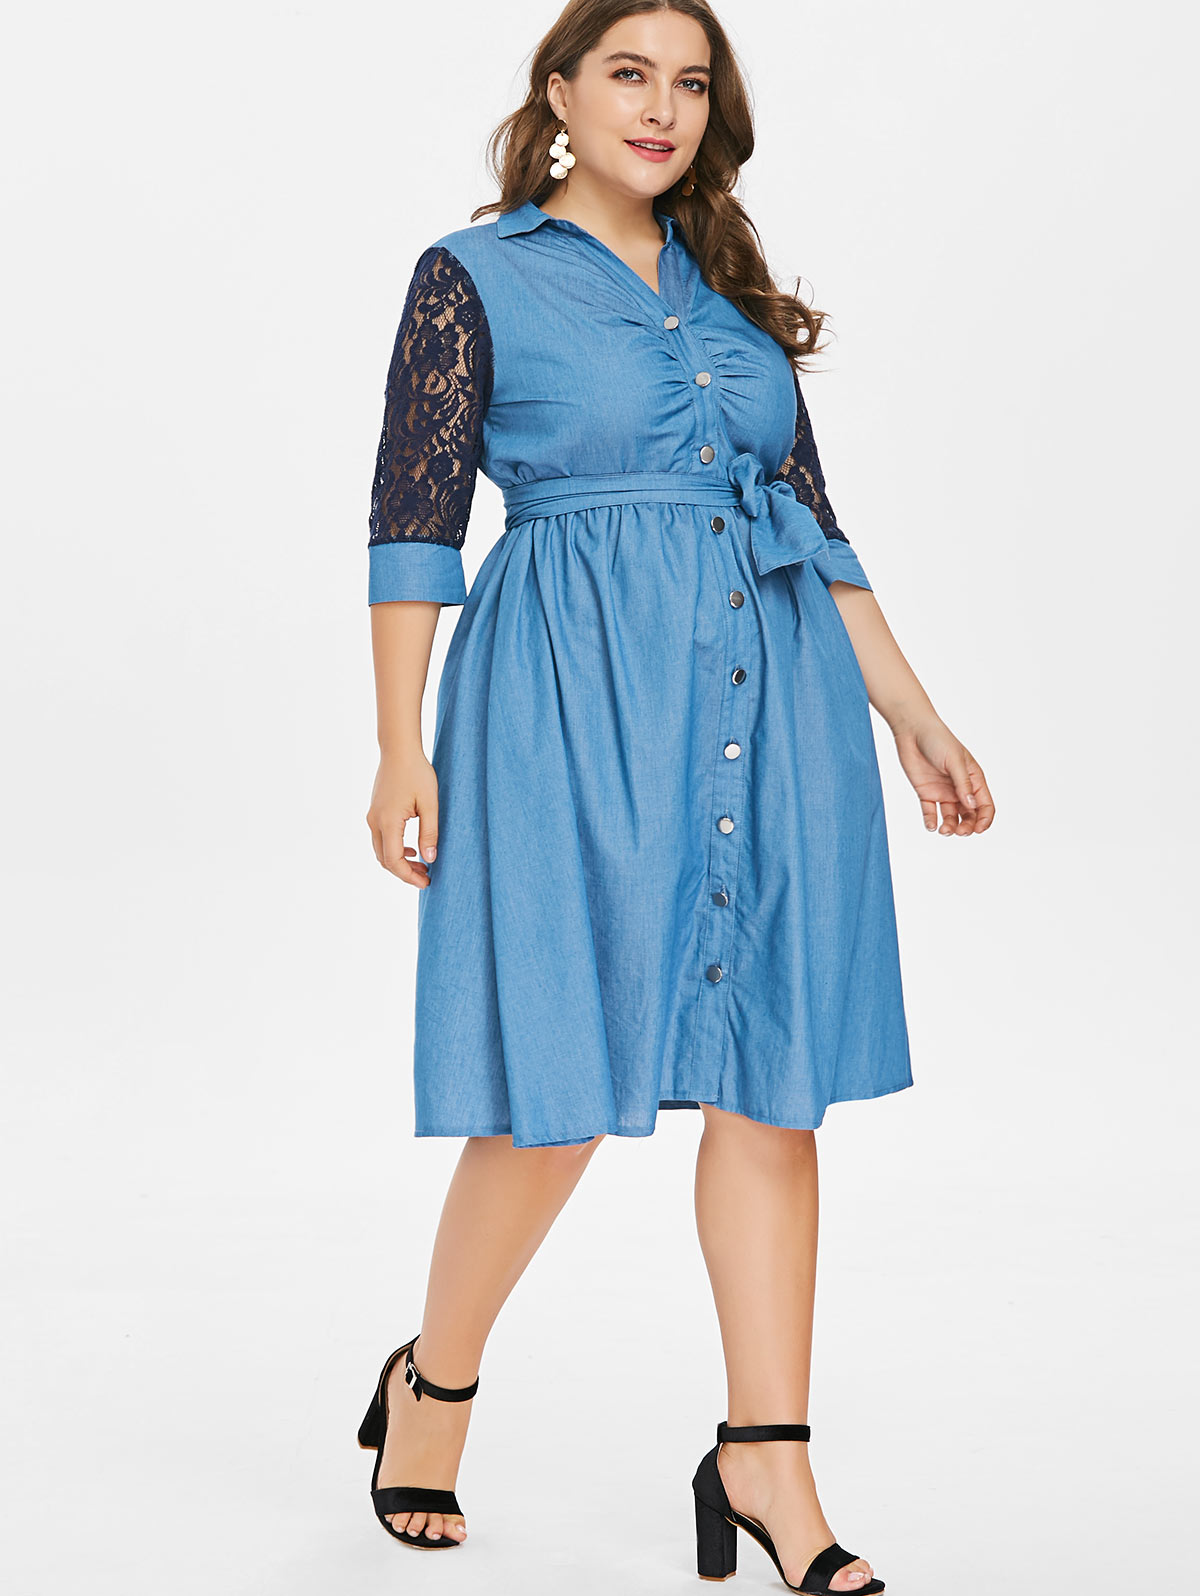 0b2499e72c4 Aliexpress.com   Buy Wipalo Plus Size Lace Sleeve Button Up Denim Dress  2018 Summer Lace Up Turn Down Collar Cowboy 3 4 Length Sleeves Big Size 5XL  from ...